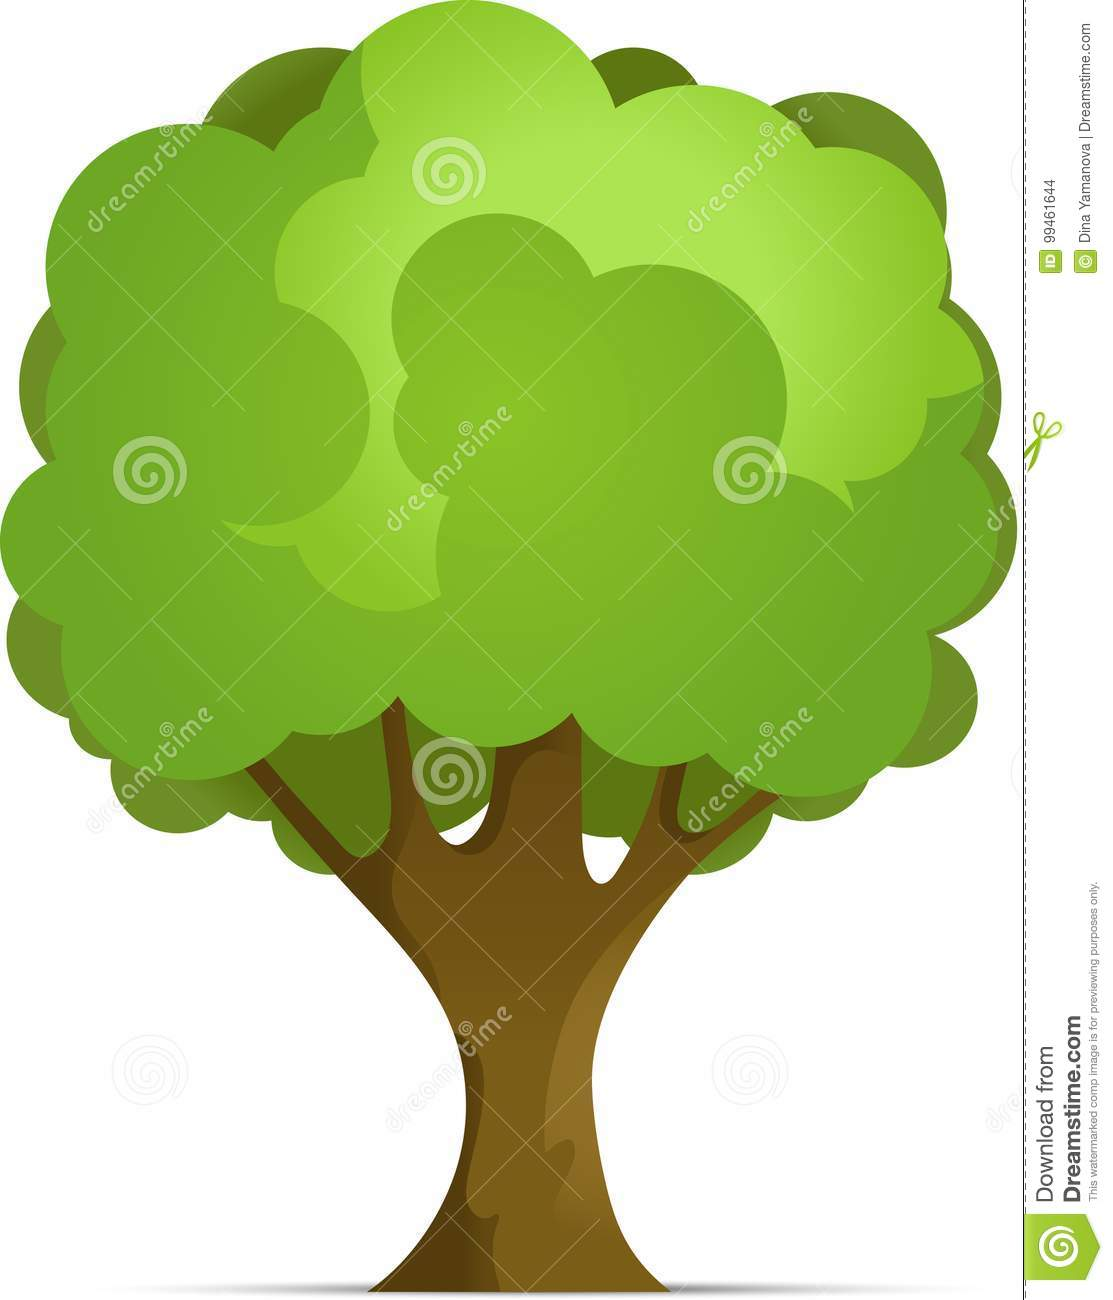 Cartoon Forest or Park Tree With Gradient Isolated on White Background. Vector Illustration with Shadow.